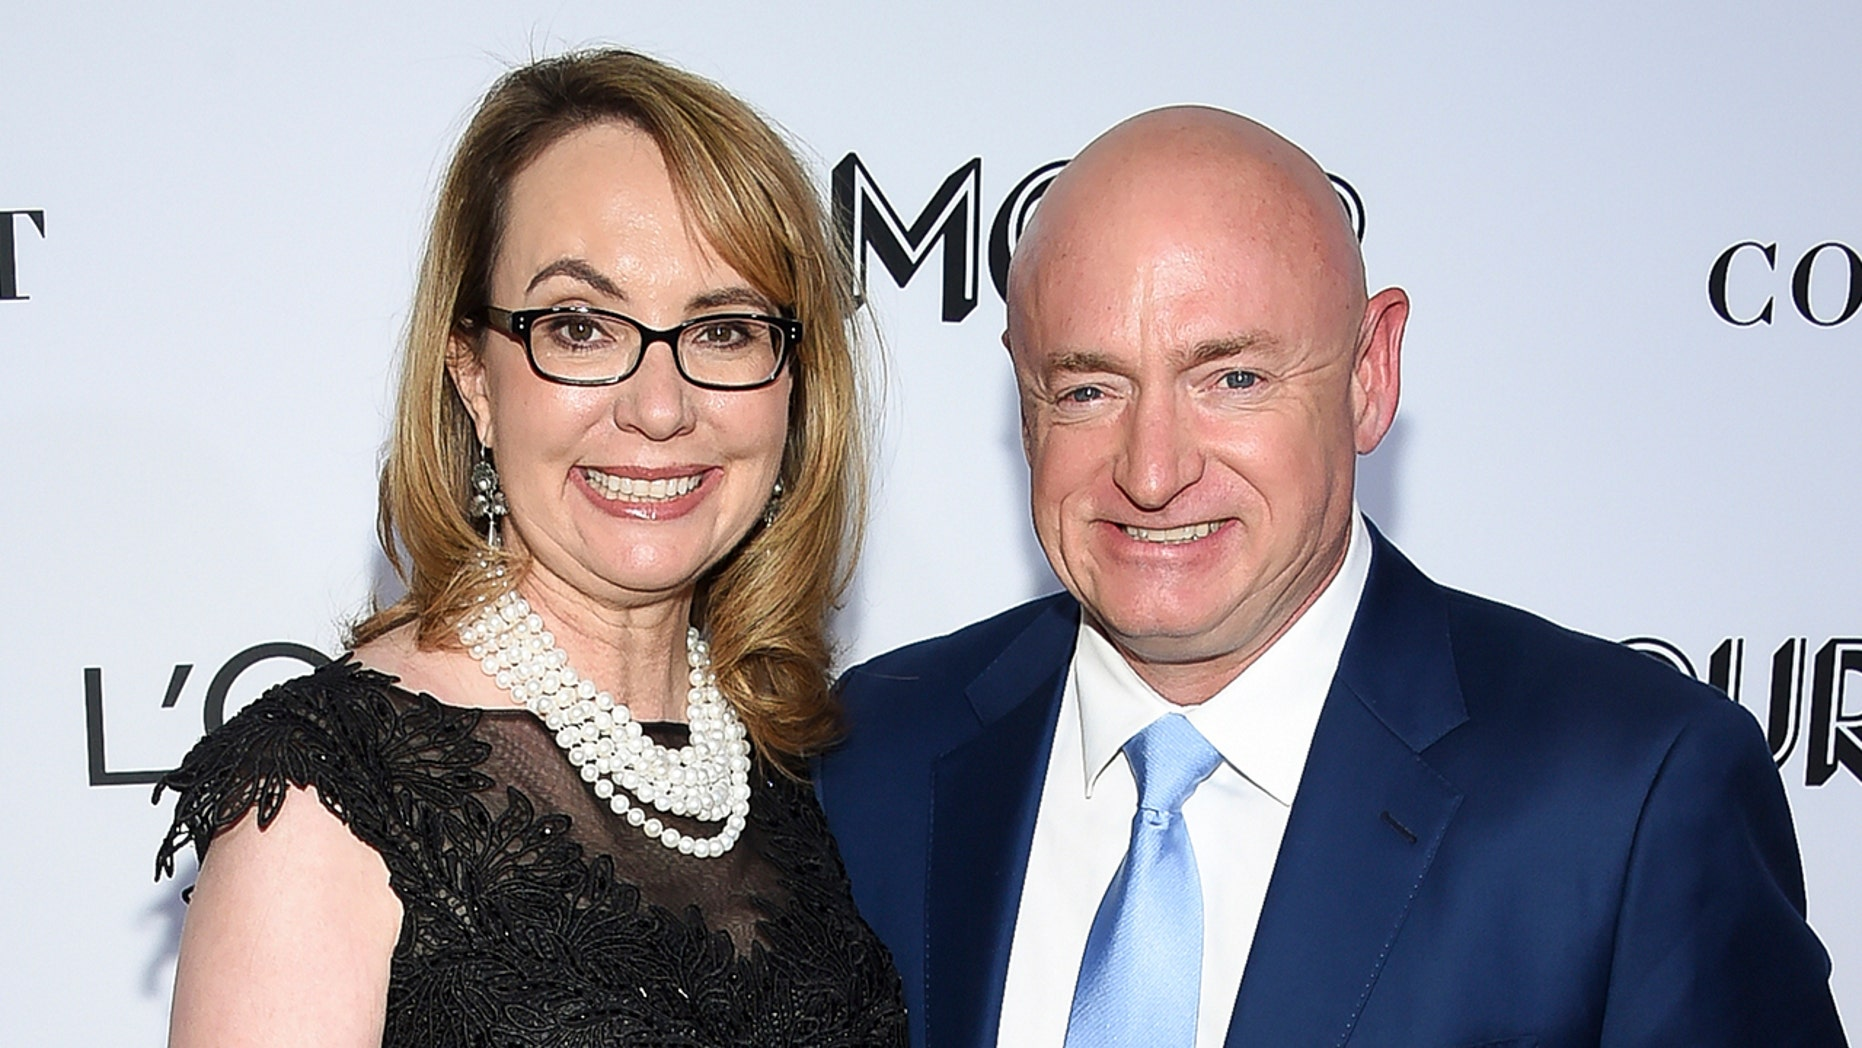 Mark Kelly announces run for McCain Senate seat in Arizona